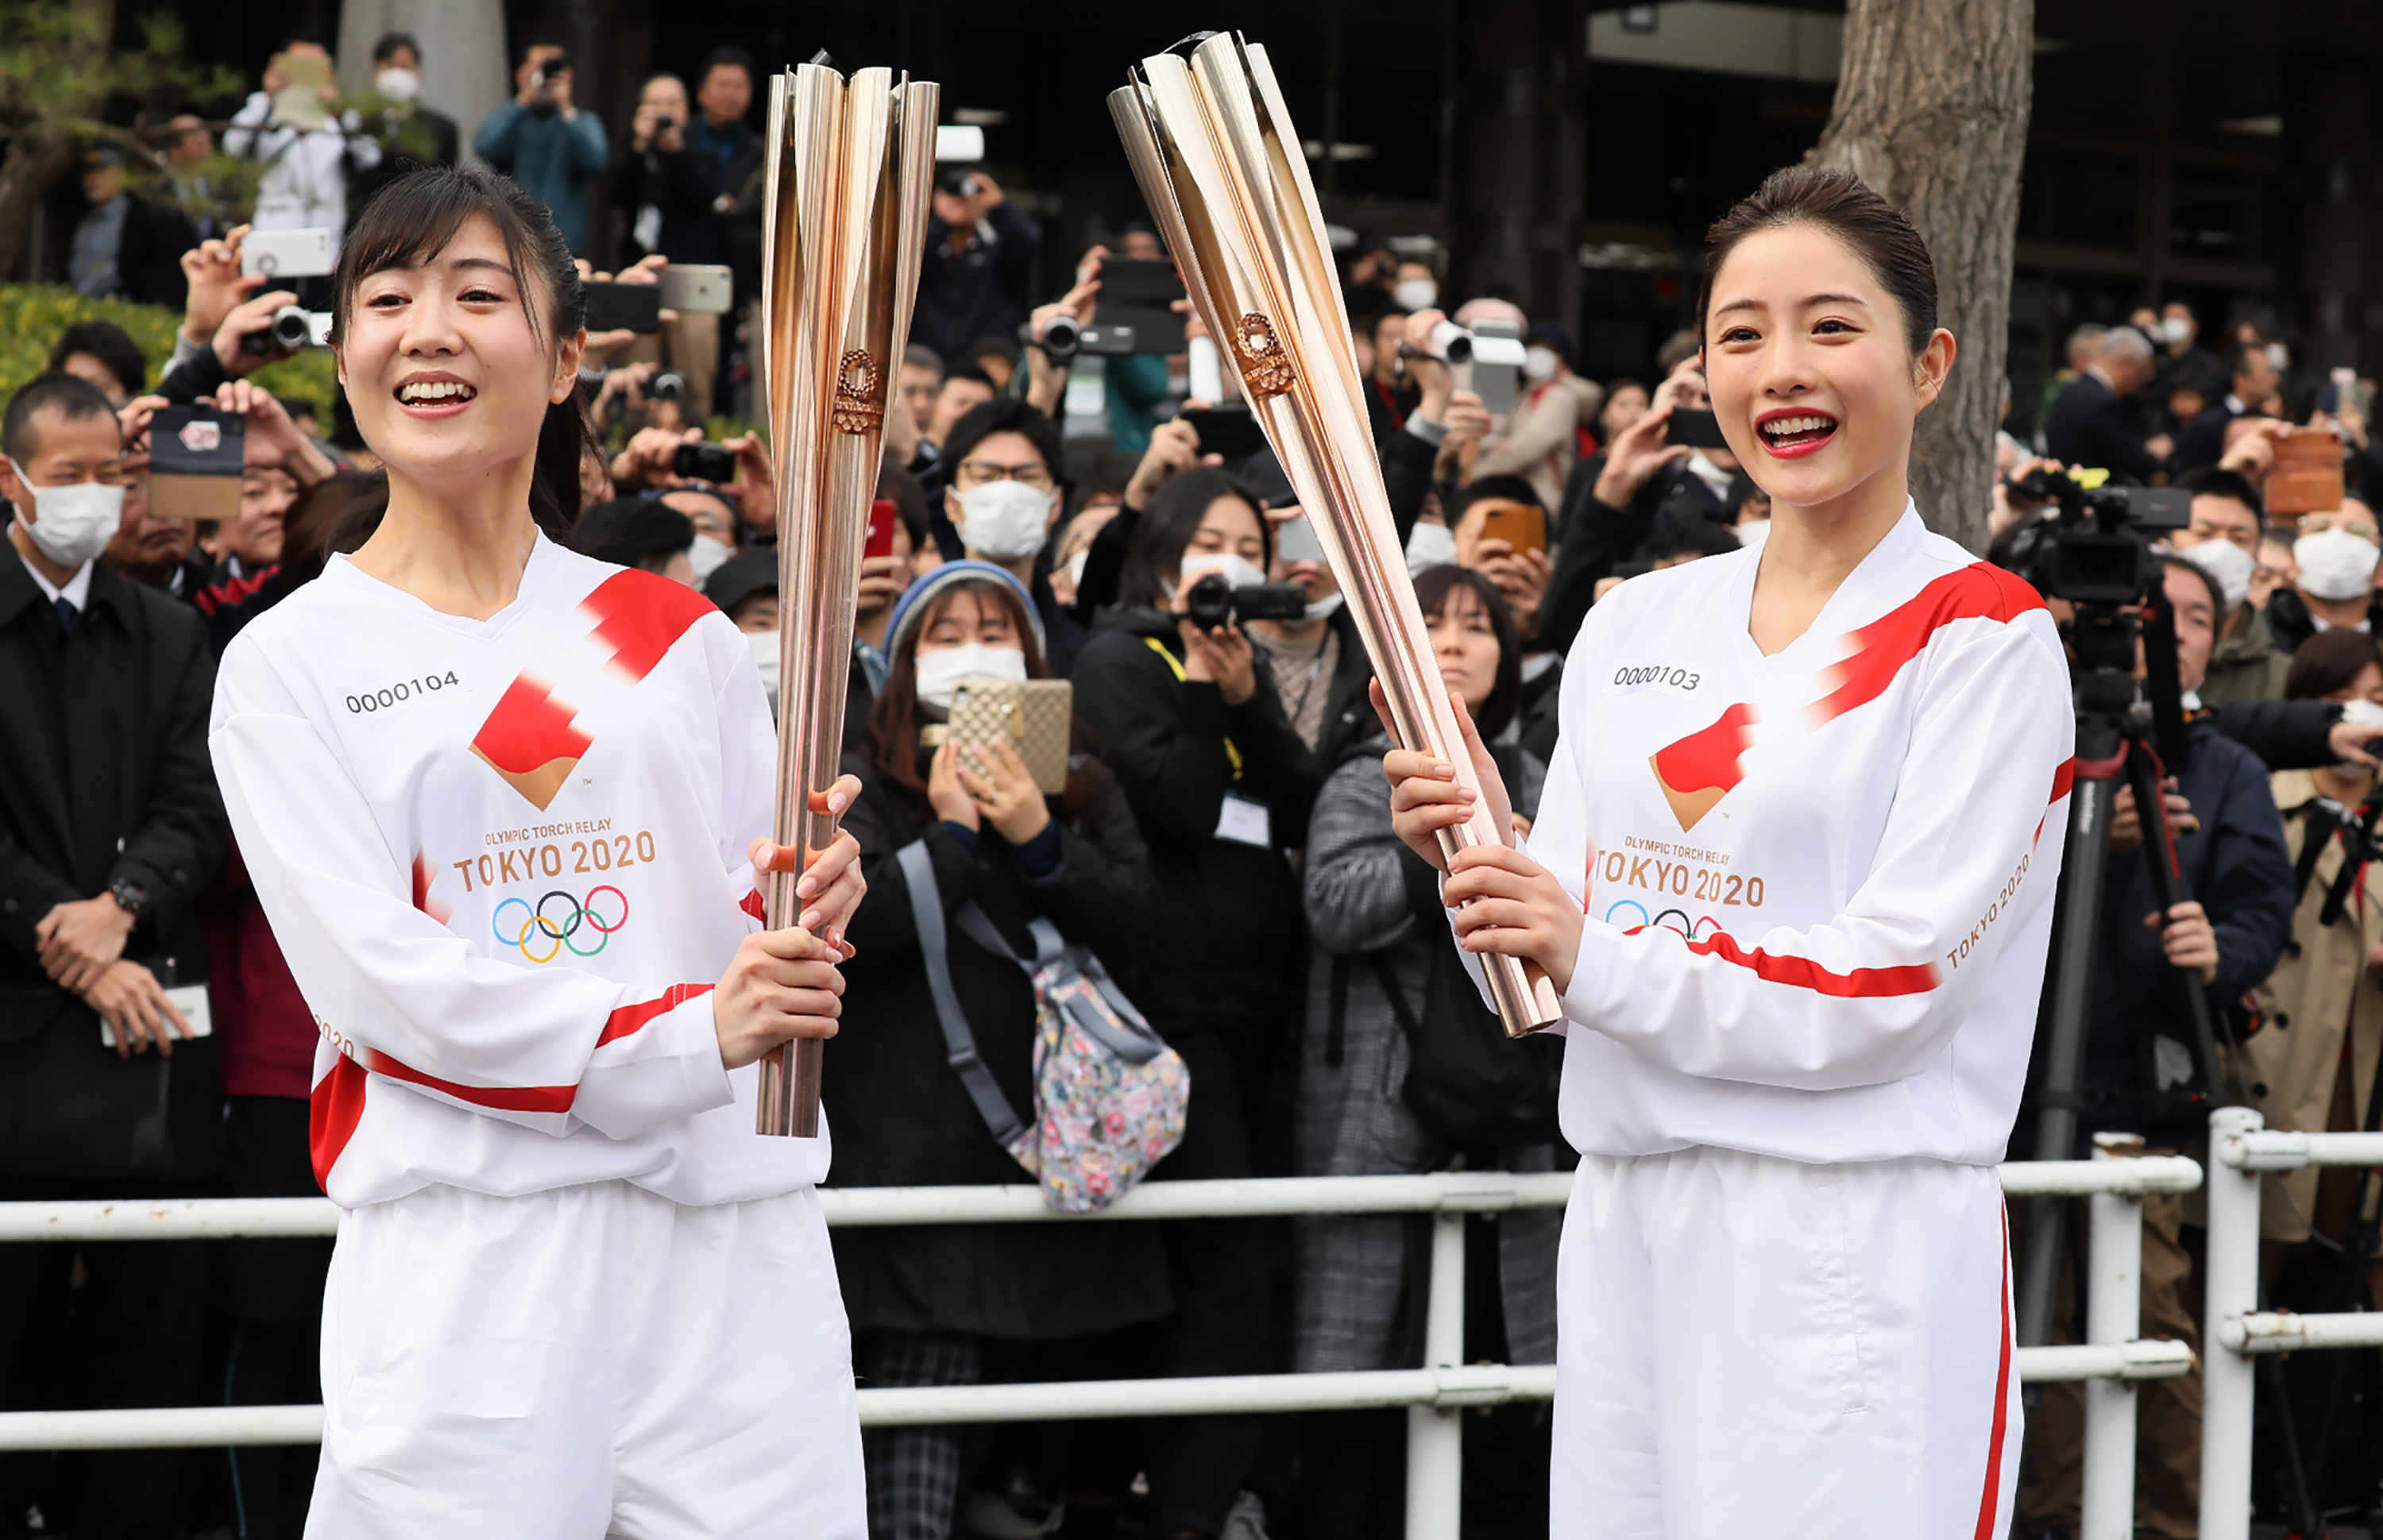 File: A torchbearer and actress Satomi Ishihara (R), one of the official ambassadors of the Tokyo 2020 torch relay, pose with the olympic torch during a rehearsal of the Tokyo 2020 Olympics torch relay in Tokyo on February 15, 2020.